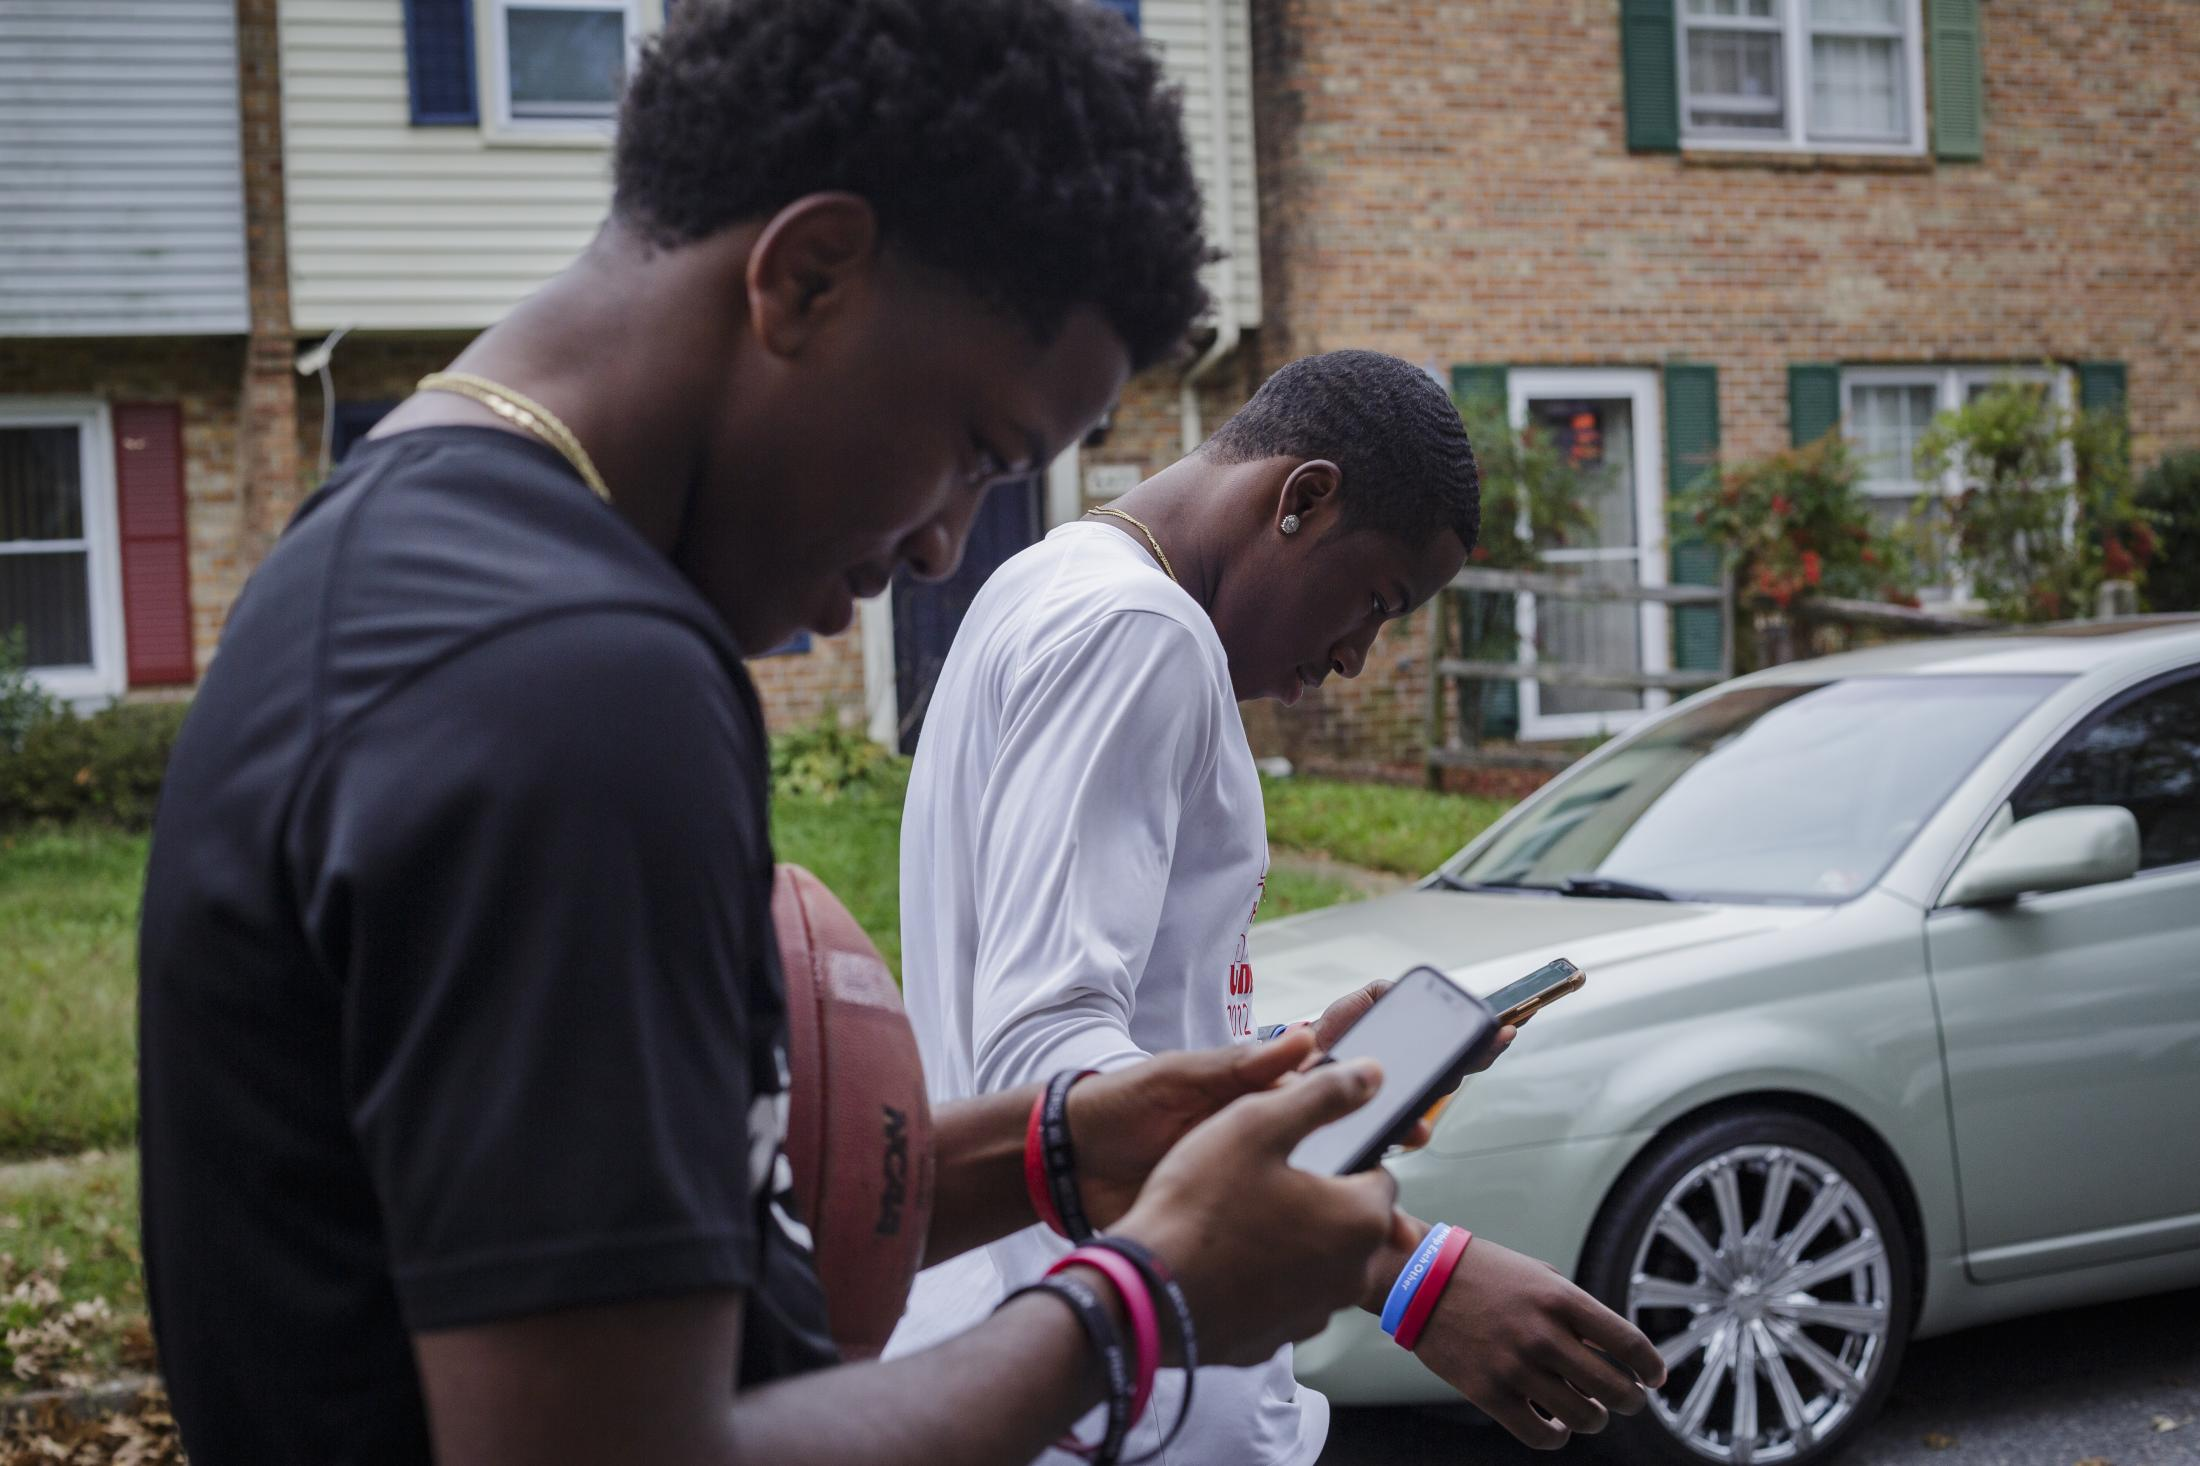 NORFOLK, VA – October 29, 2020: Pierre Royster and Jeff Foster, members of the Lake Taylor High School TITANS, walking around their neighborhood while watching videos on their phones. Due to the COVID-19 pandemic, football games were canceled at Lake Taylor High School in Norfolk, VA, leaving the TITANS members with plenty of free time. Carlos Bernate / The Undefeated